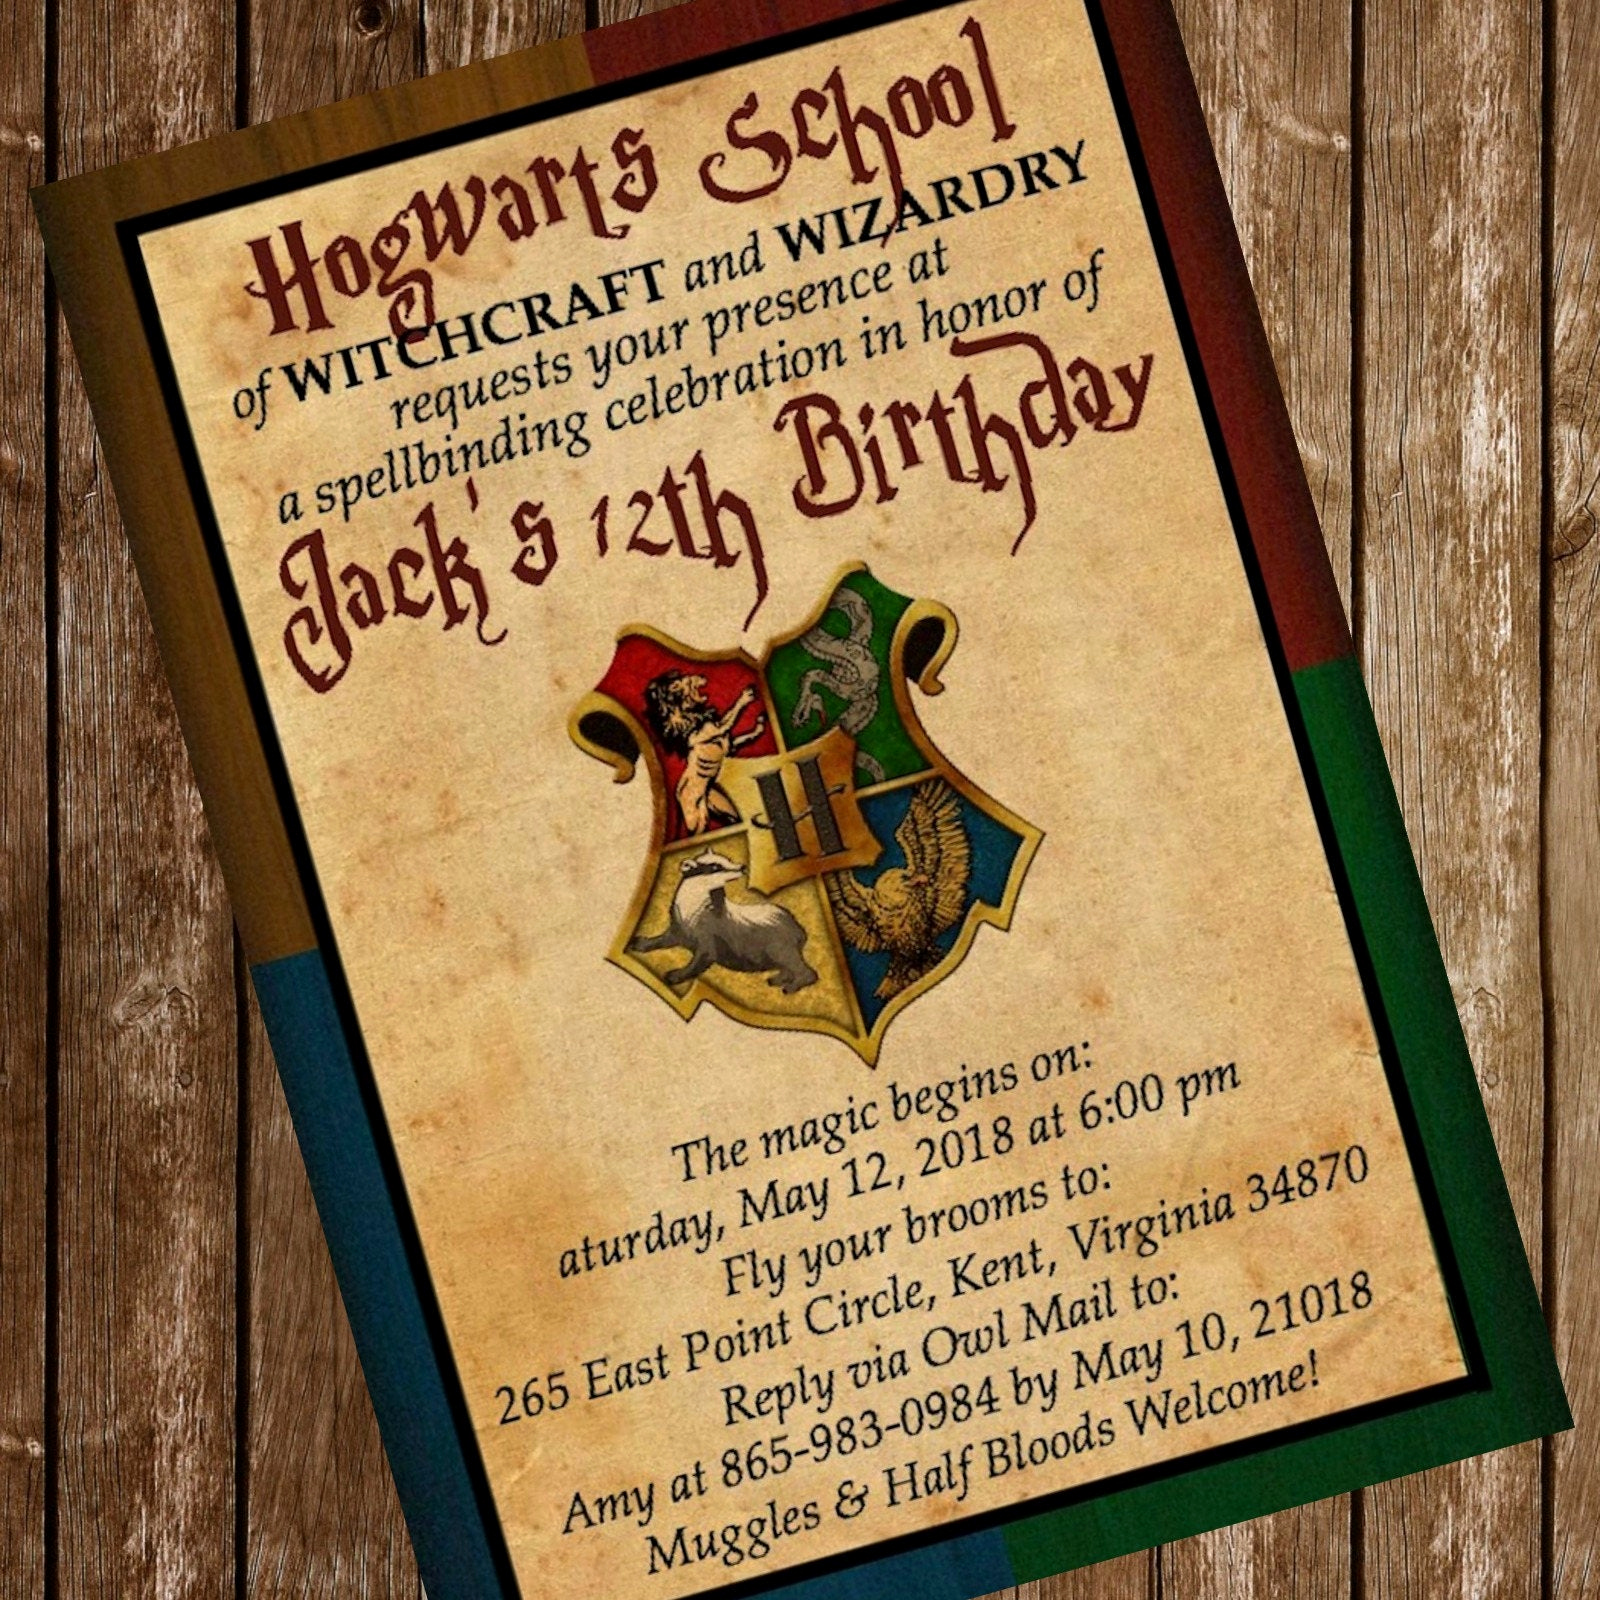 Harry Potter Birthday Invitation Wording Elegant Harry Potter Hogwarts Birthday Party Invitation Download 4 X 6